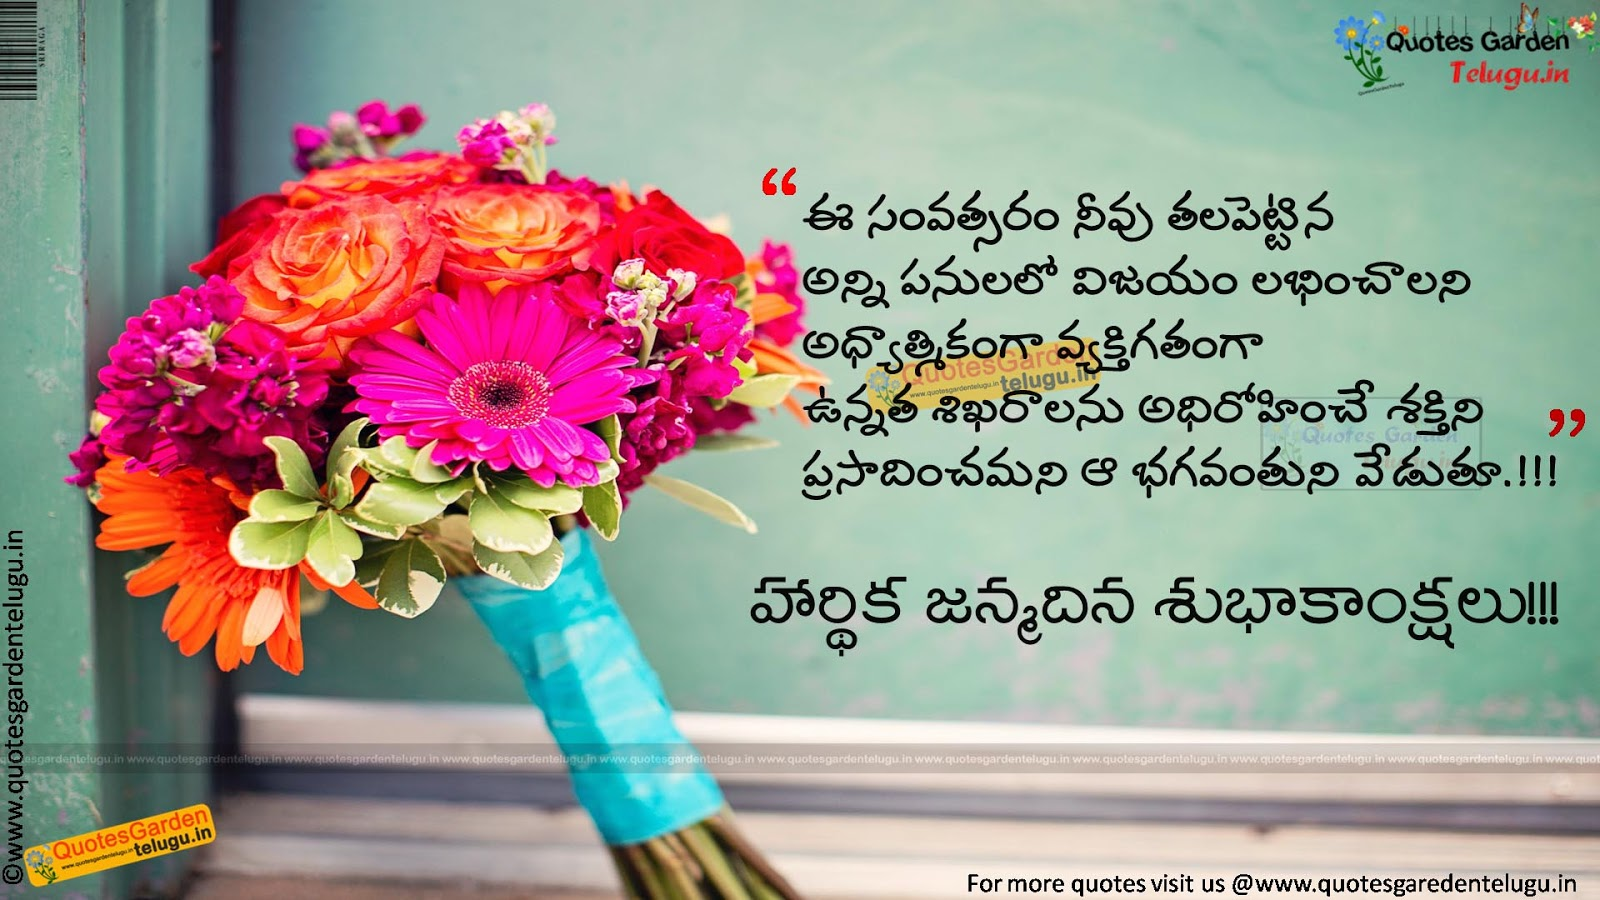 Best Birthday Greetings Wishes Quotes In Telugu 1160 Quotes Garden Telugu Telugu Quotes English Quotes Hindi Quotes